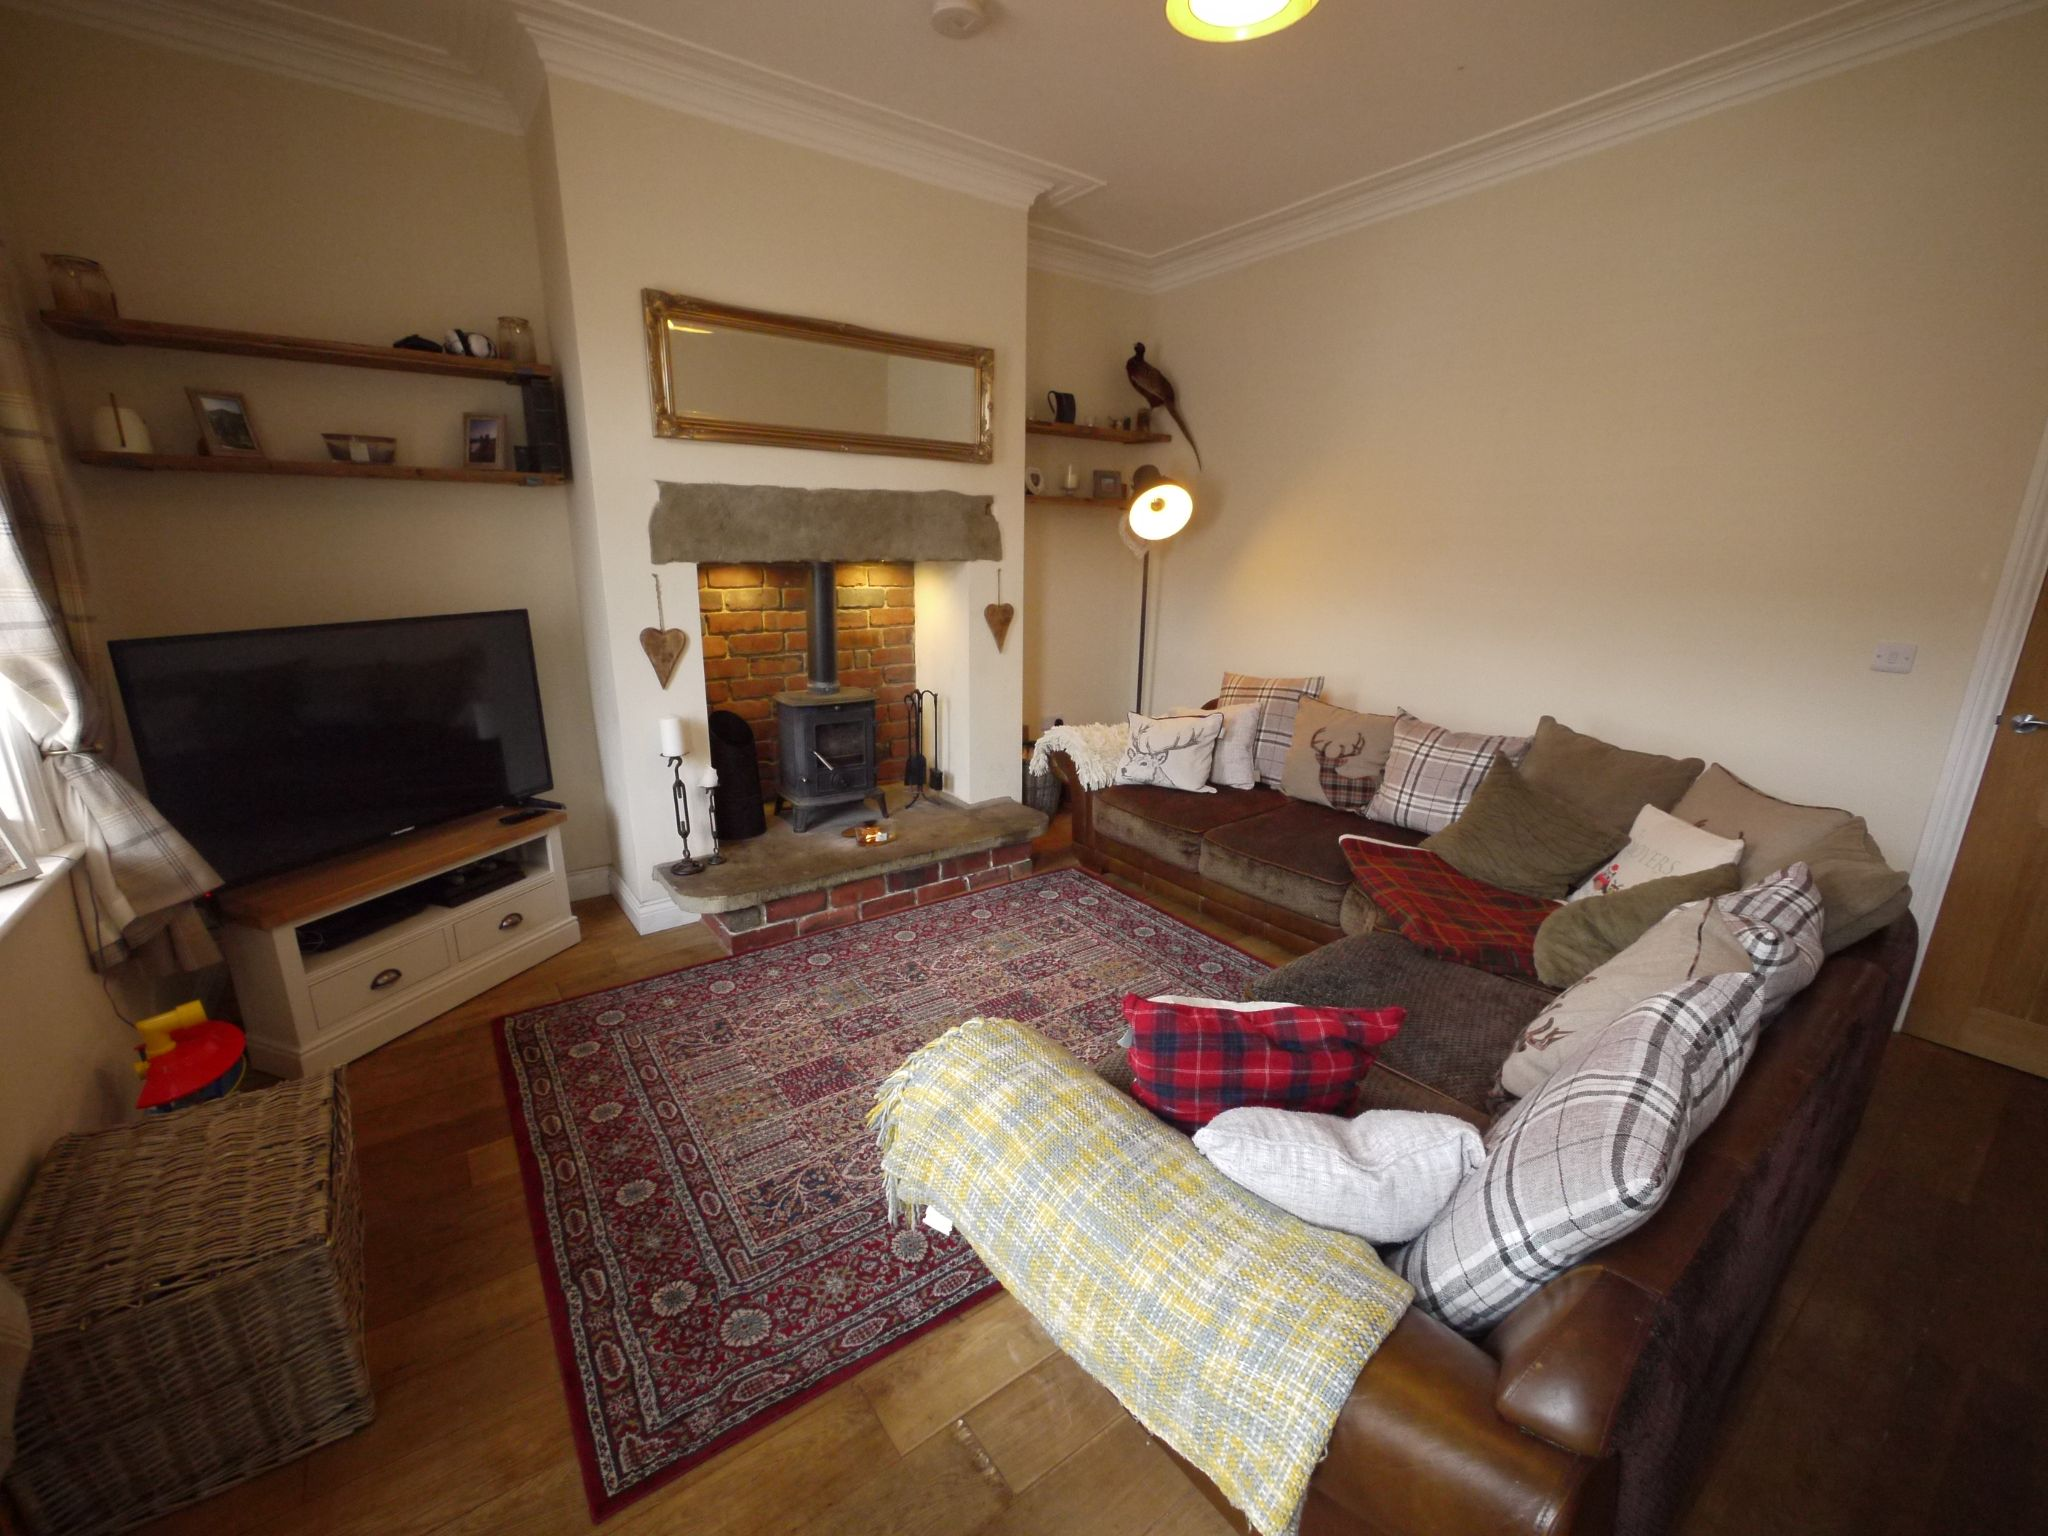 2 bedroom mid terraced house SSTC in Brighouse - Lounge 1.